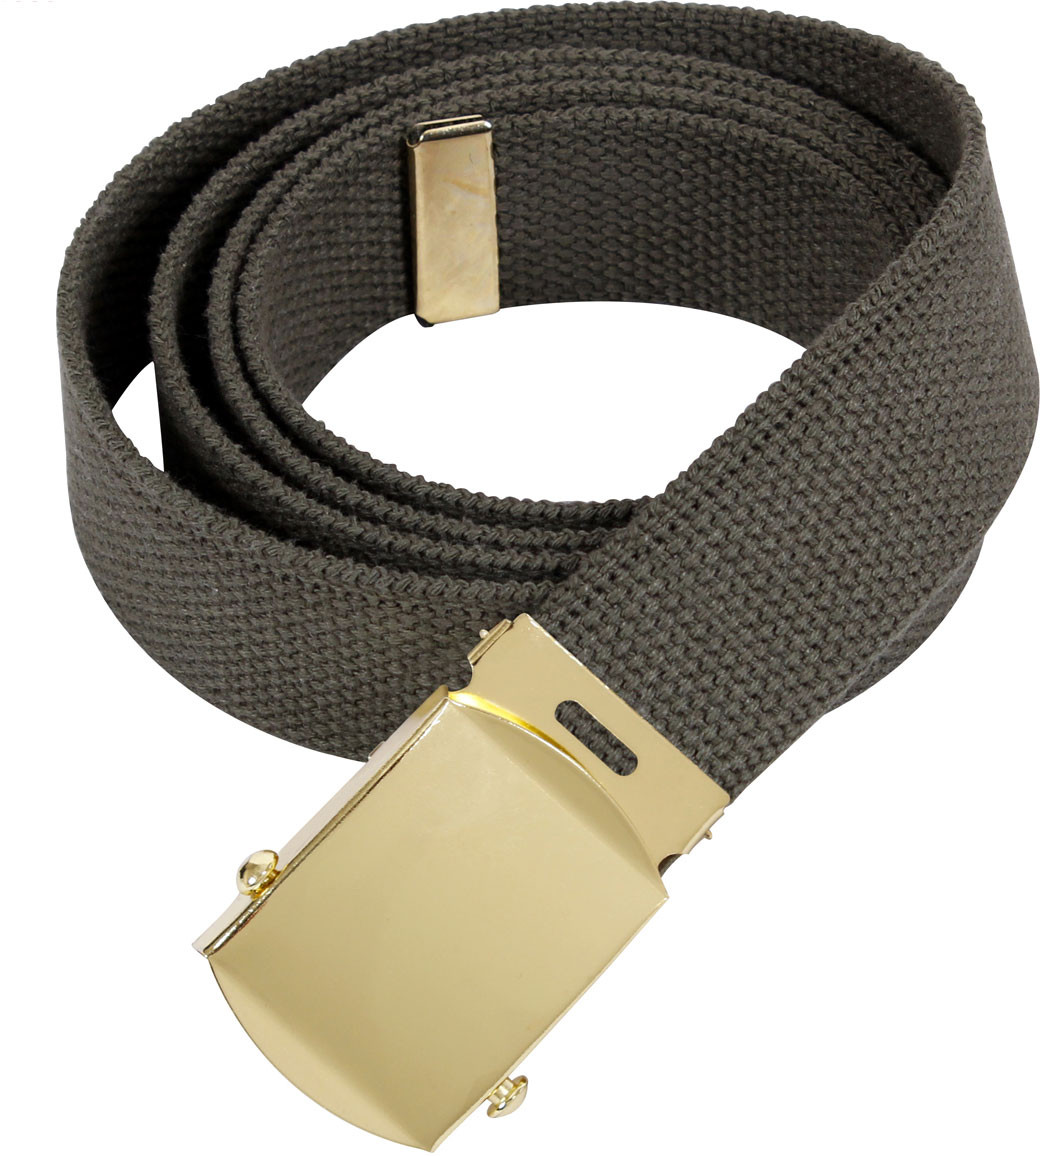 More Views. Olive Drab Military Web Belt with Brass Buckle 541fb8fb147